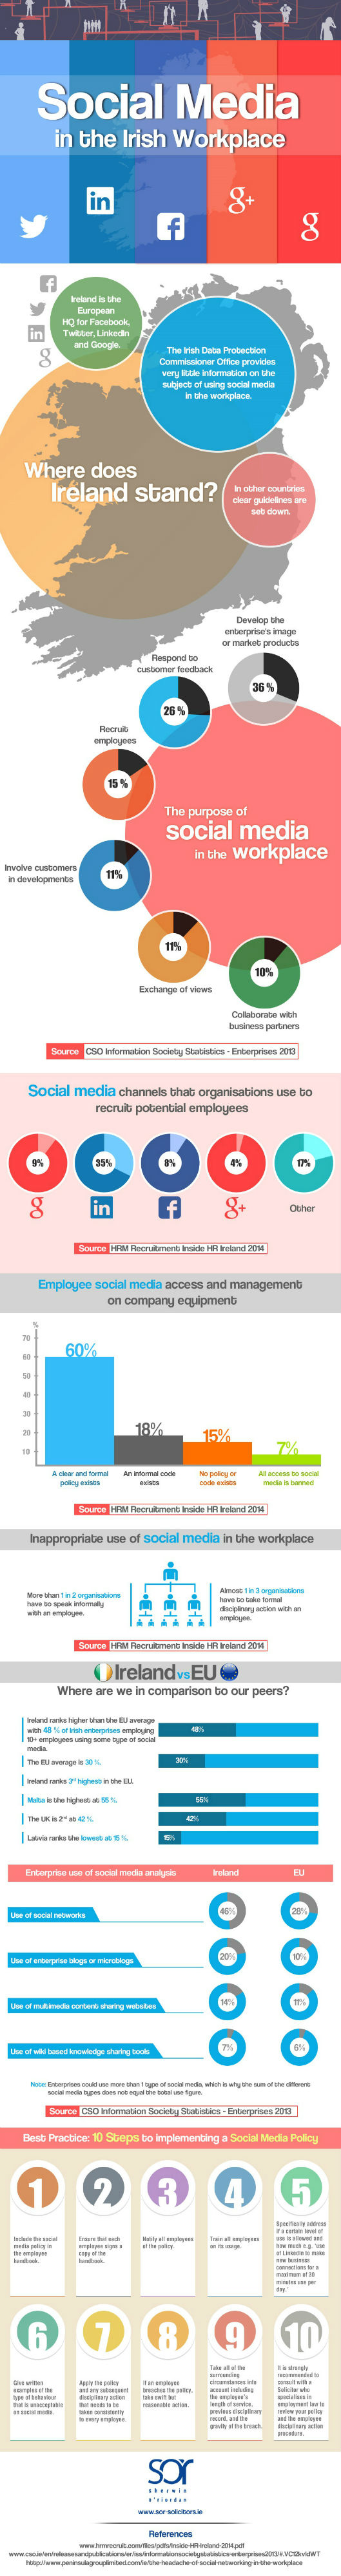 Social Media in the Irish Workplace [Infographic]